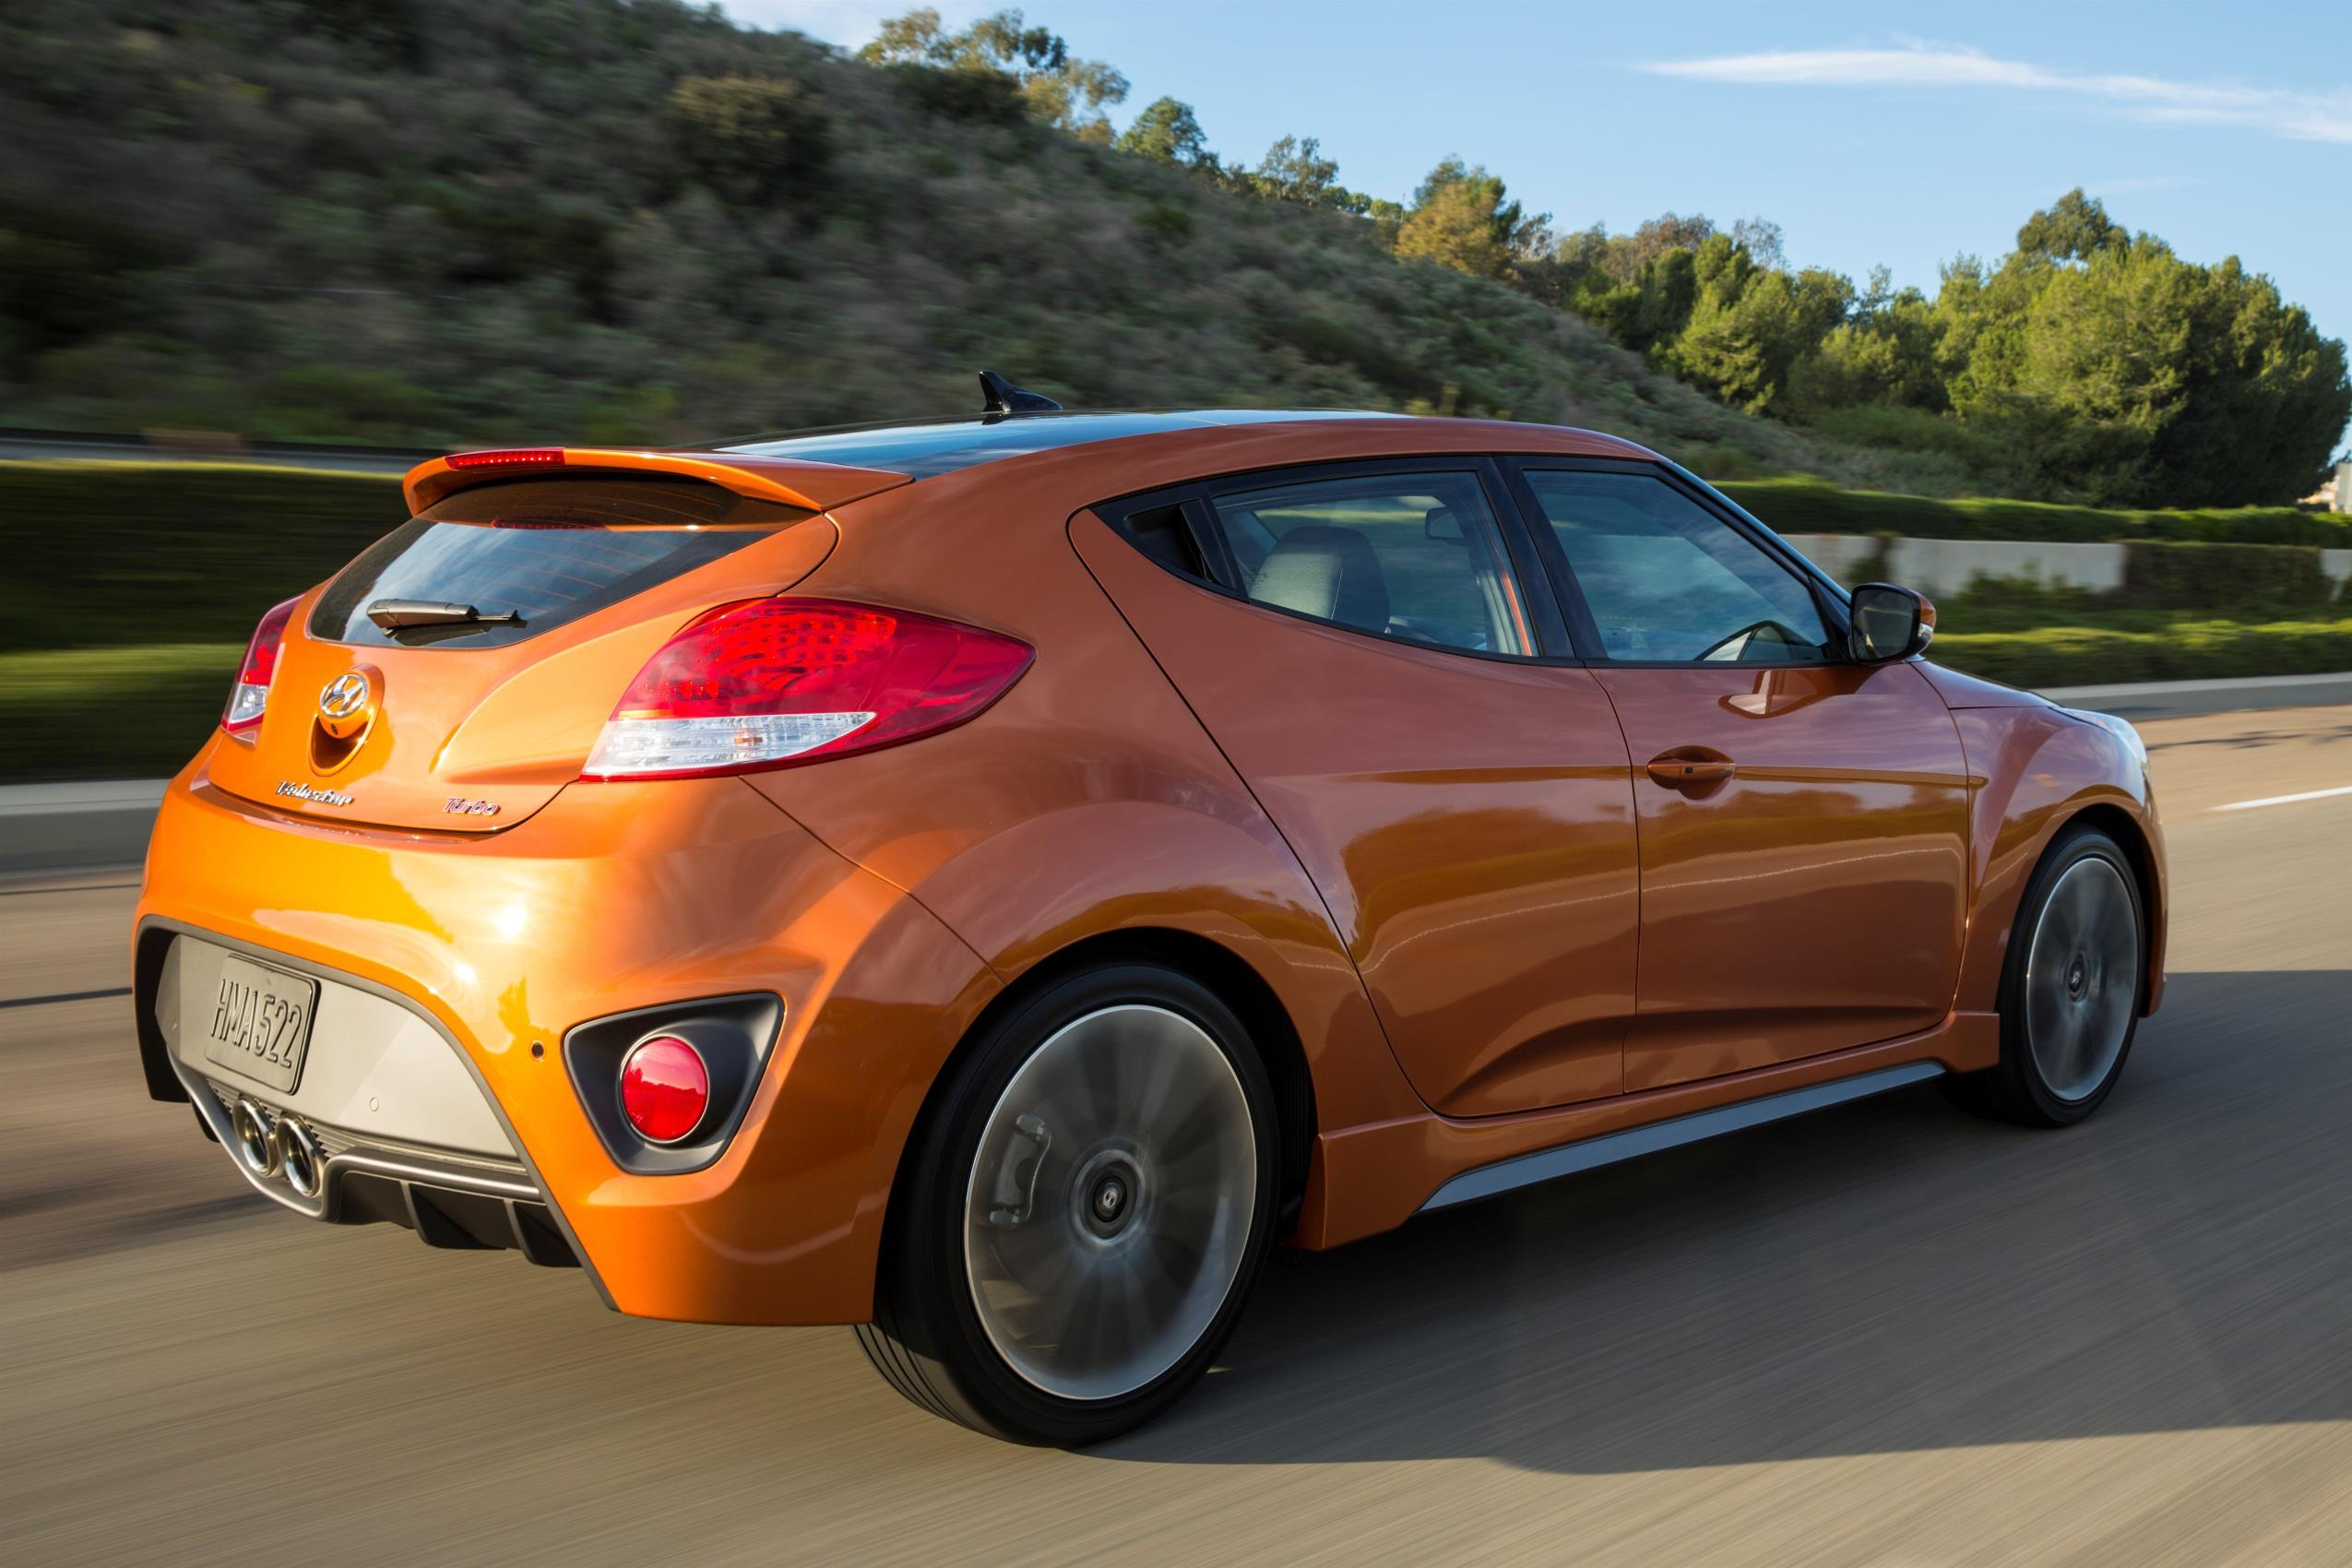 Hyundai Adds Value Minded Trim Level To The Veloster on 2000 Hyundai Elantra Climate Control